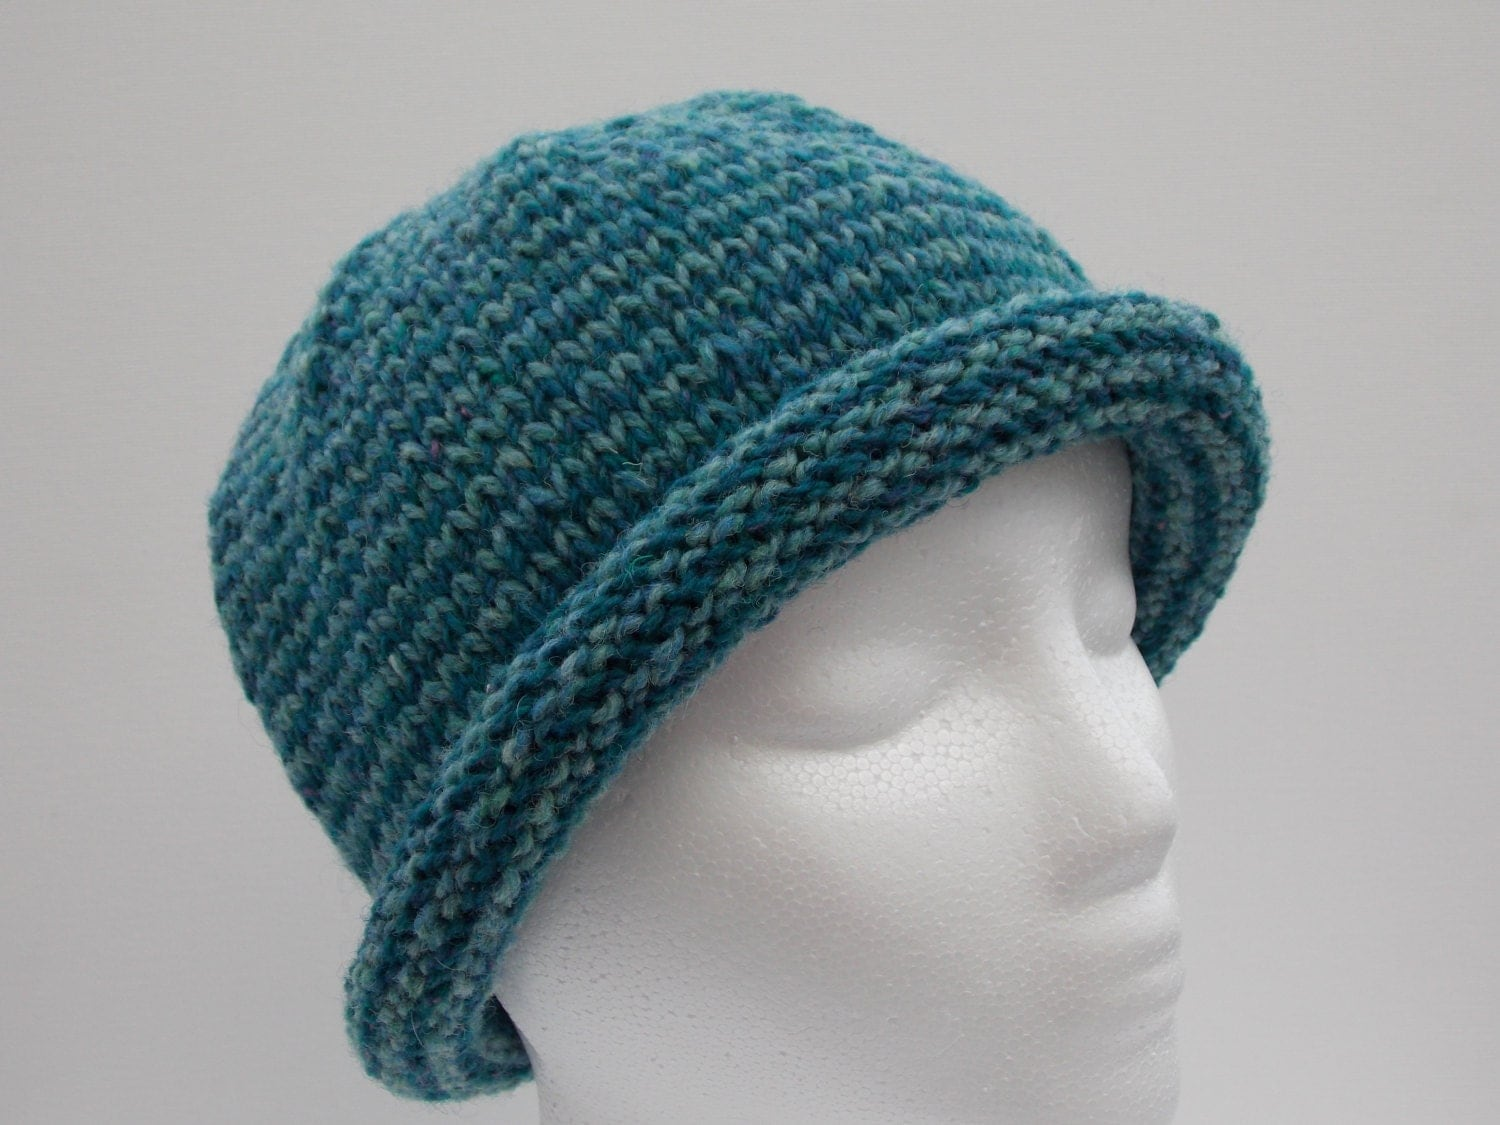 womens winter hat turquoise jade rolled brim by kathrynzdezign